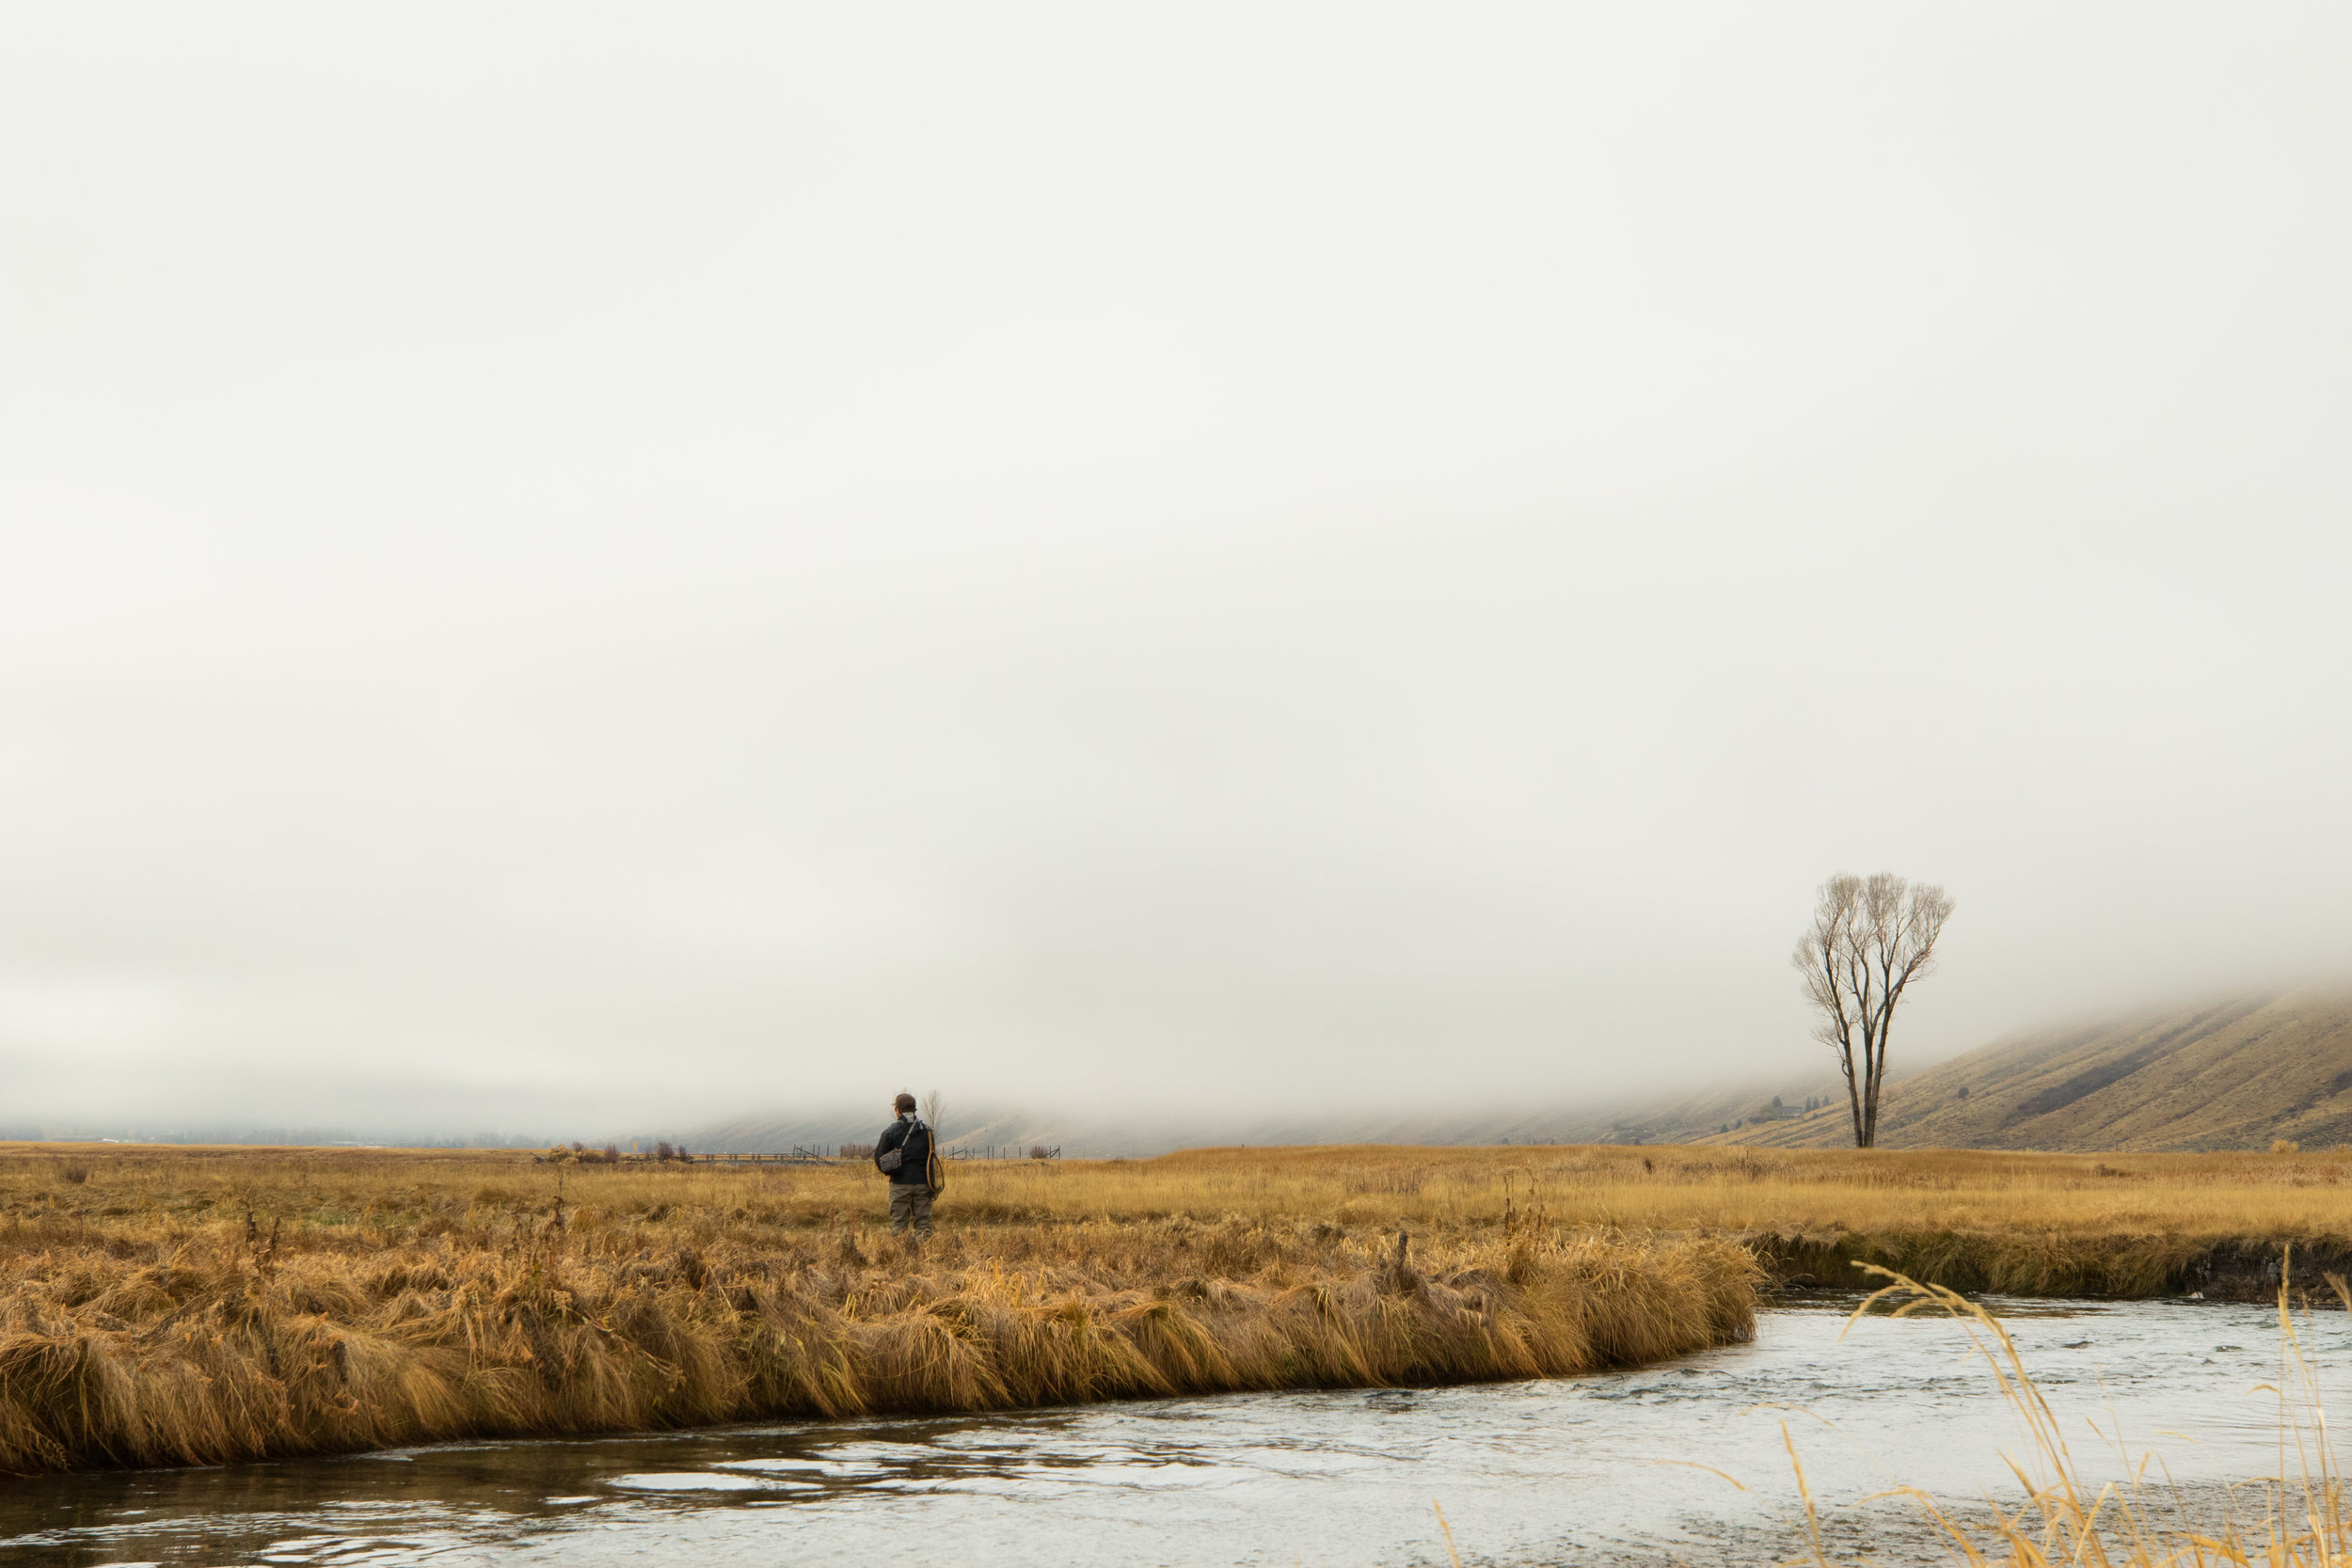 Lonely Fisherman via micahdeyoung.com